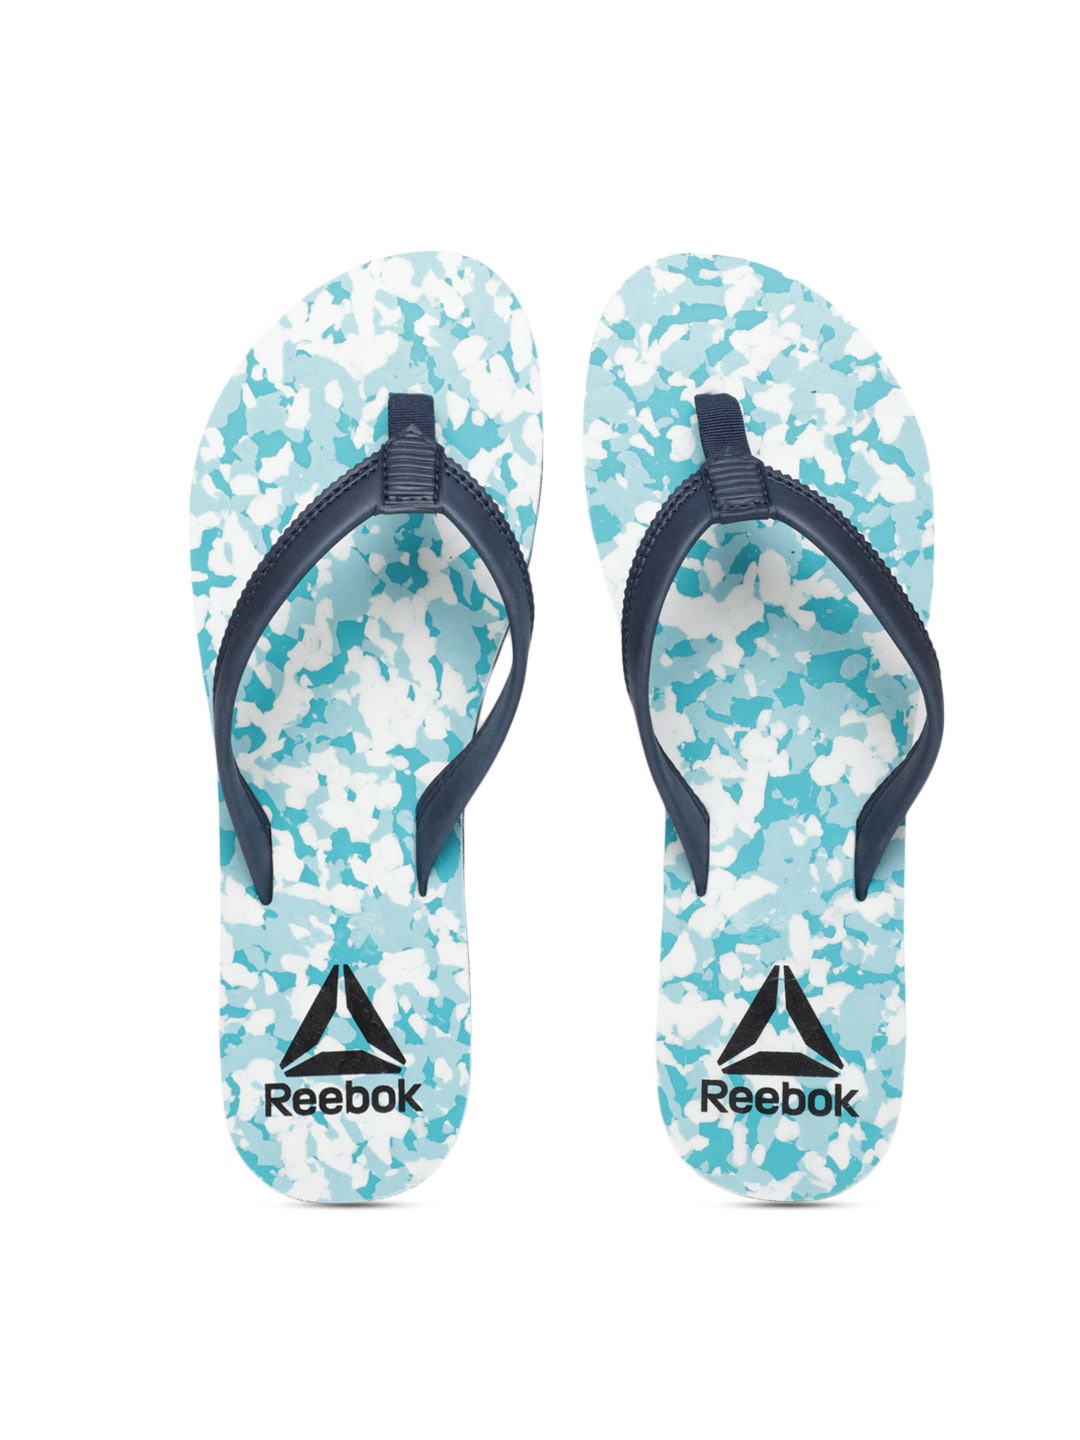 3604d241645 Buy Reebok Women Green   Black Cash Printed Thong Flip Flops - Flip ...